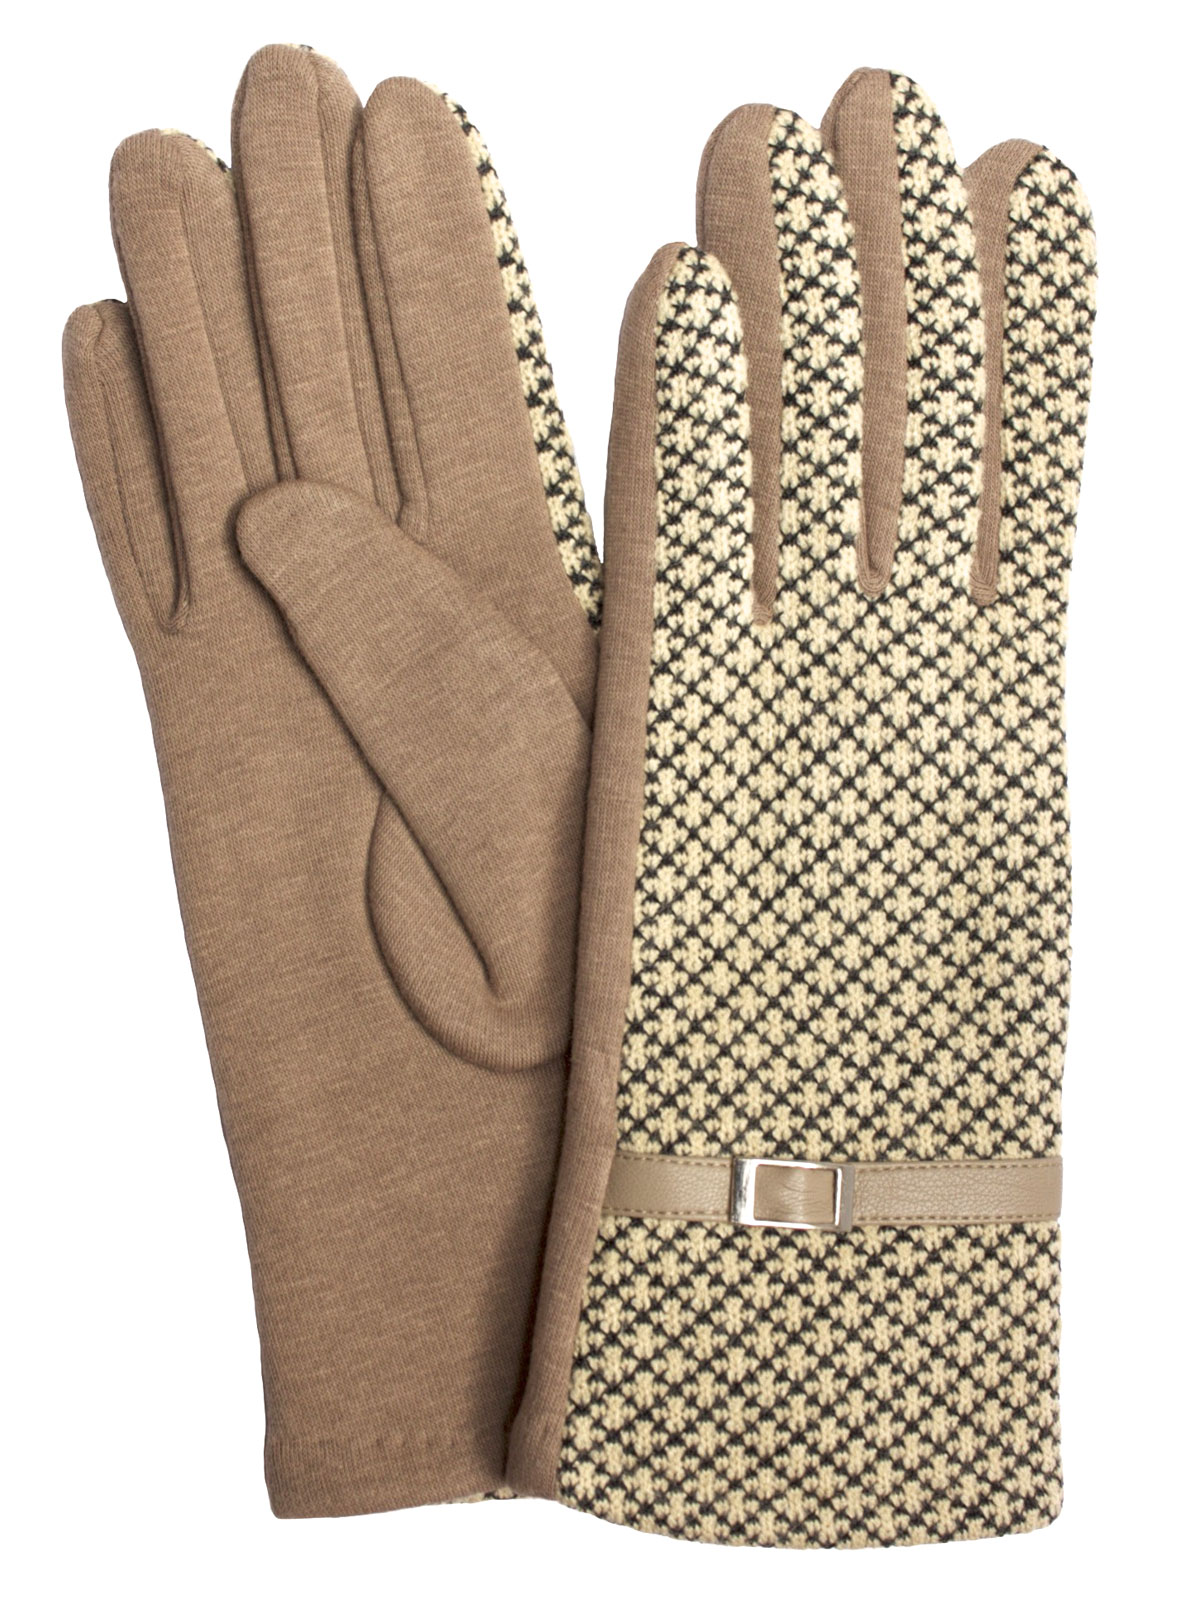 Camalya Women's Fine Knit Check Winter Gloves, Beige